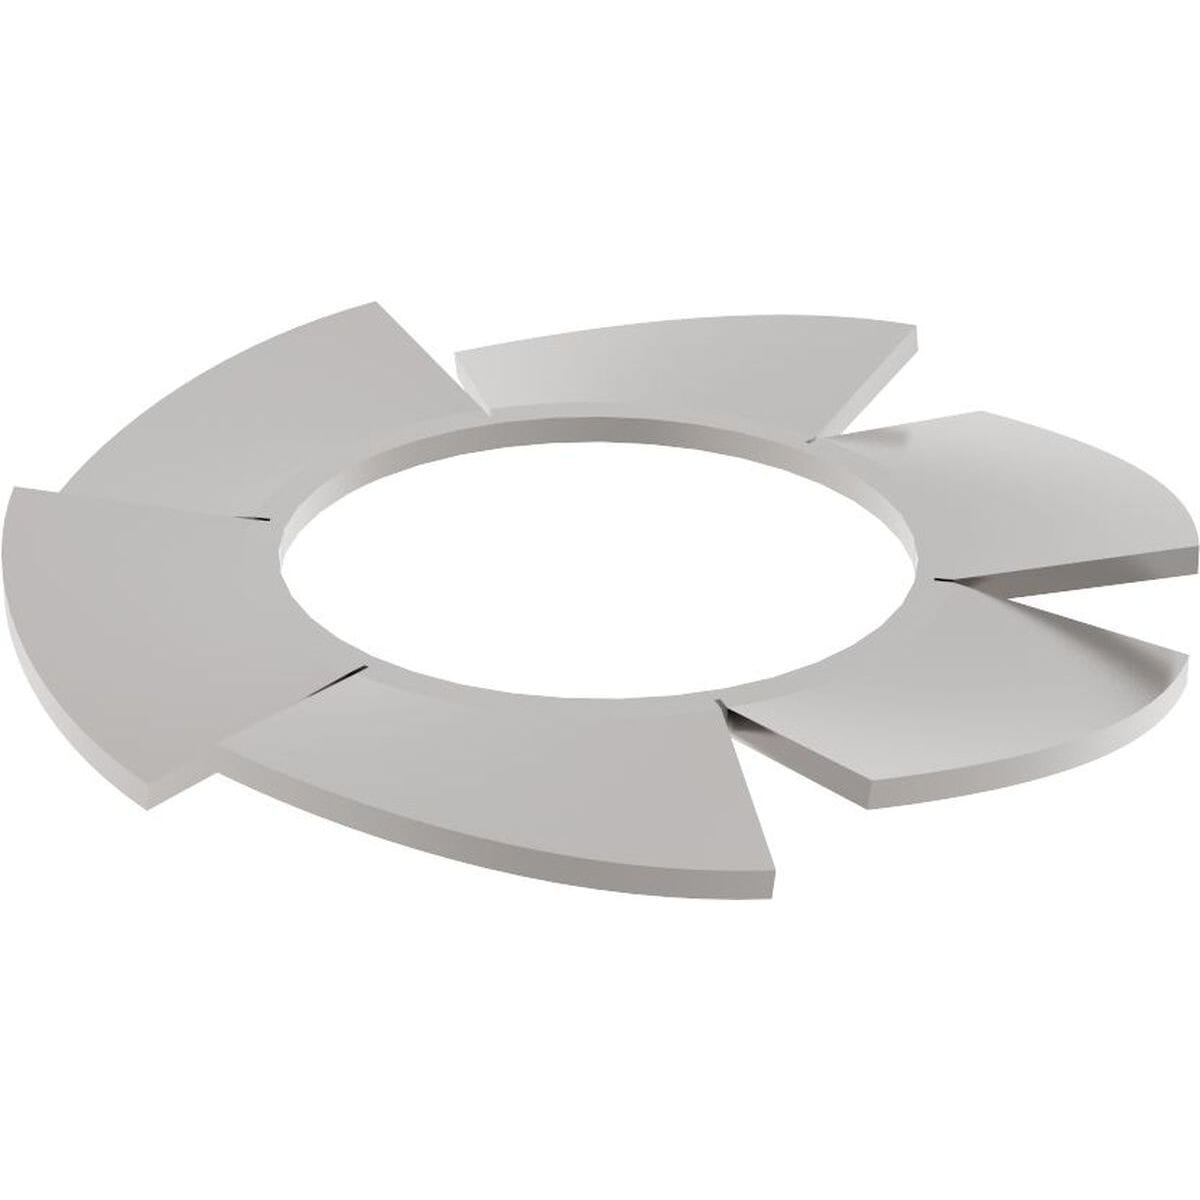 M20 External Locking Washers (DIN 6797A) - Stainless Steel (A2)